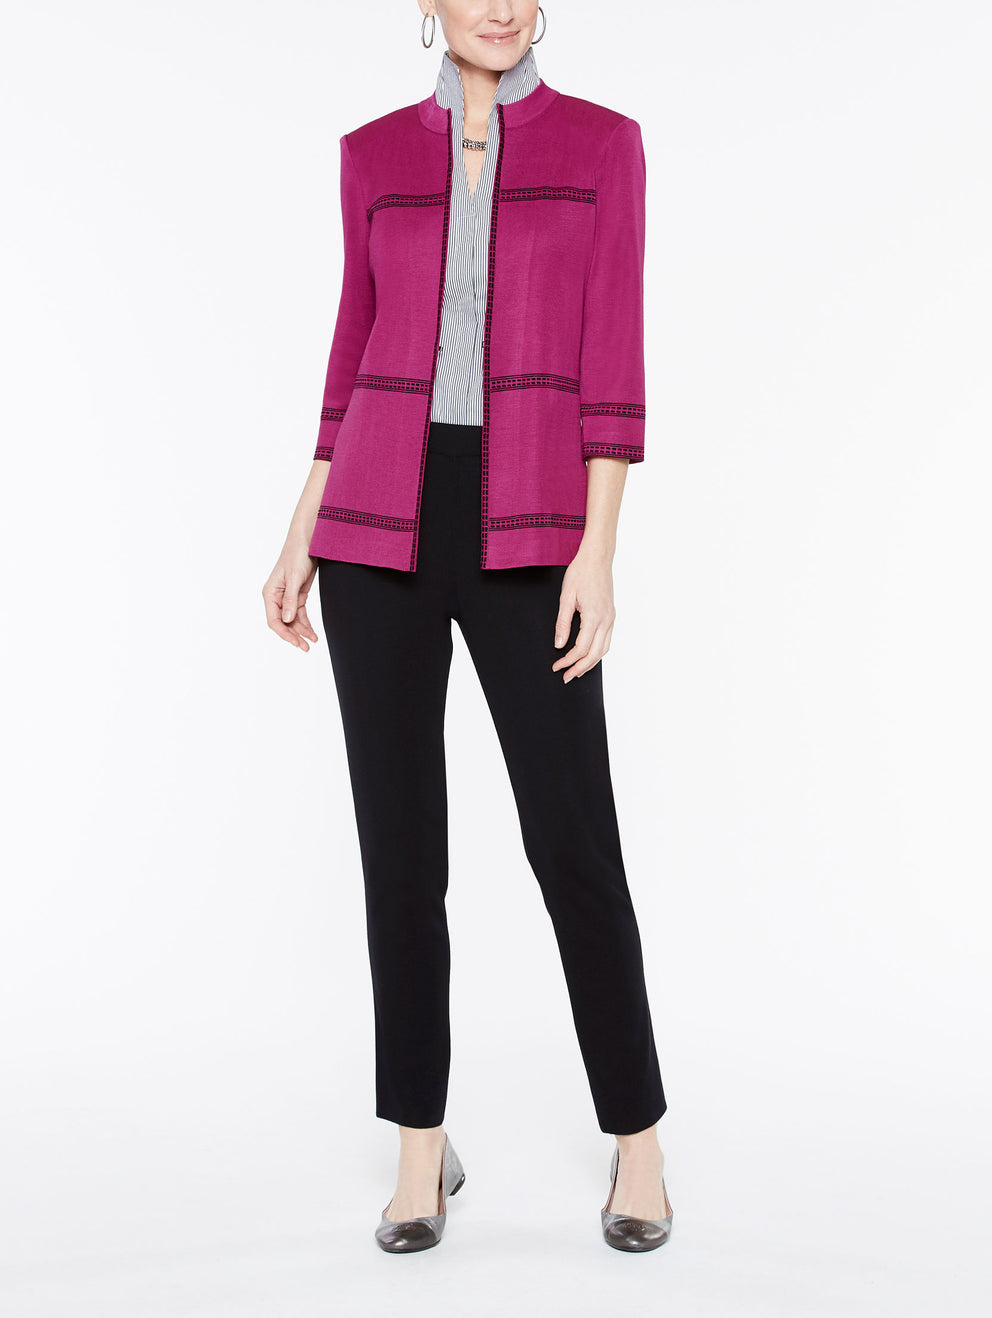 Mandarin Collar with Line Detail Jacket Color Fuchsia Rose/Black